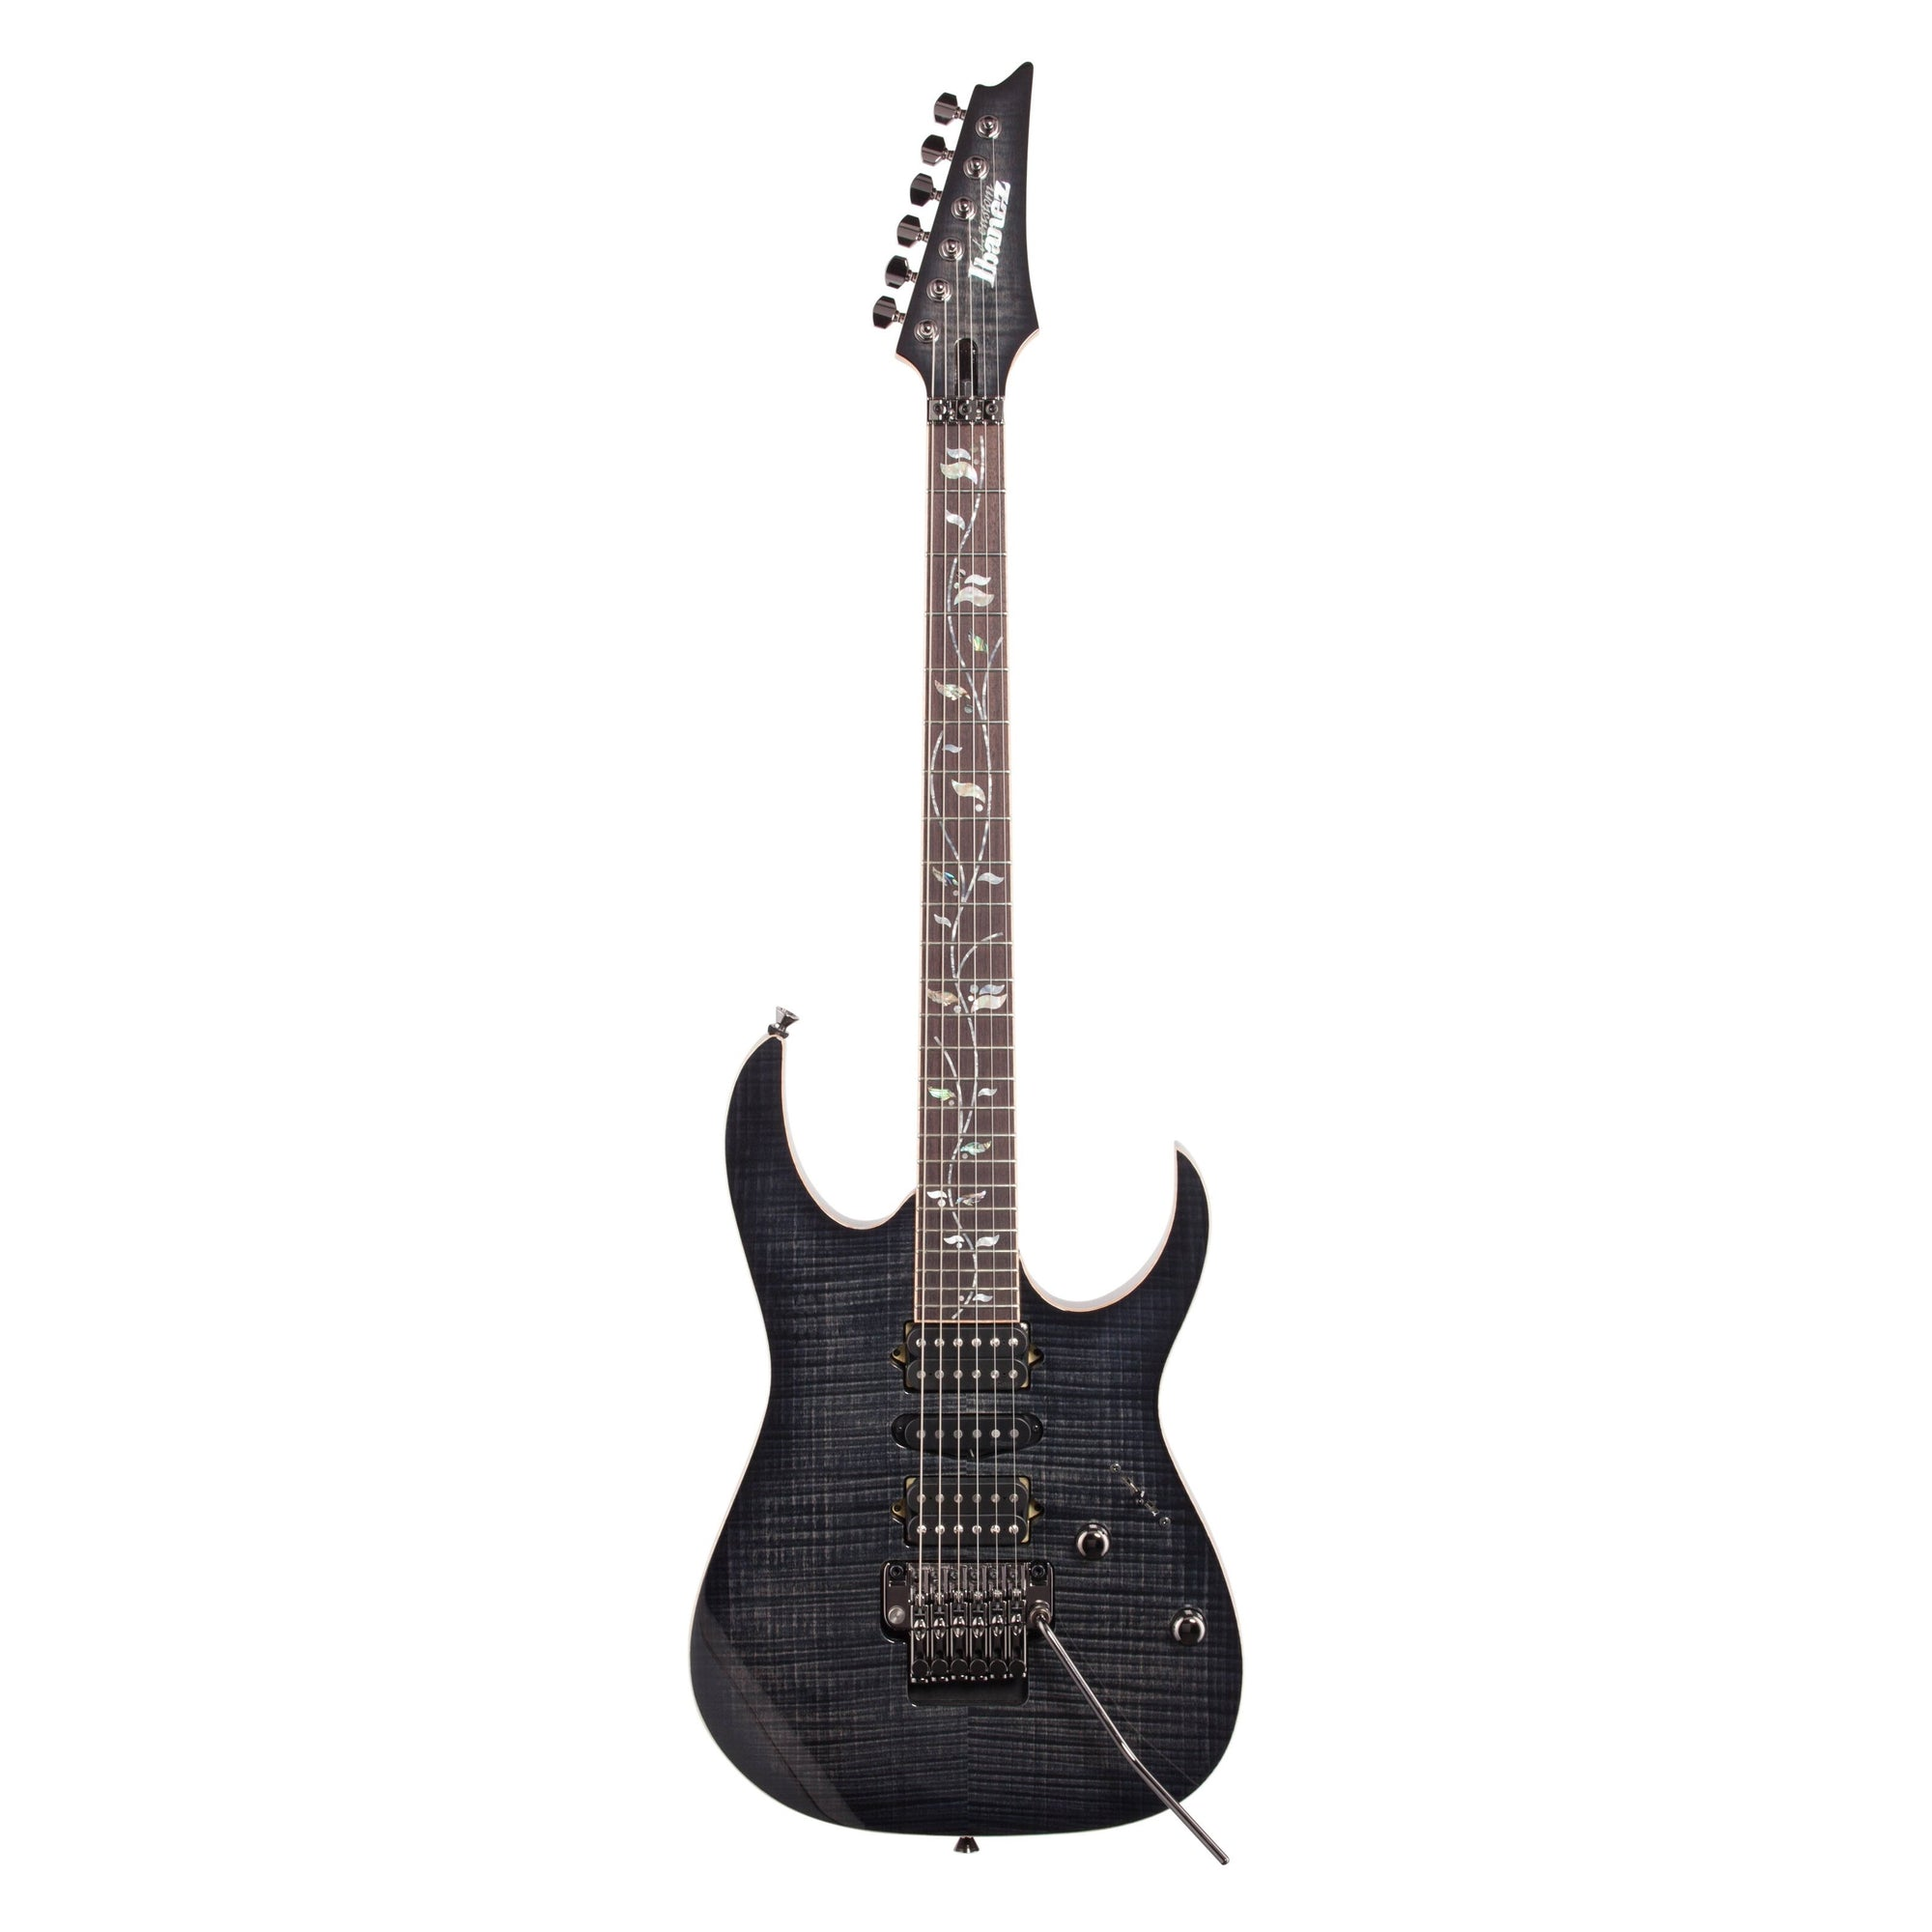 Ibanez RG8570Z J Custom Limited Edition Electric Guitar (with Case), Black Rutile